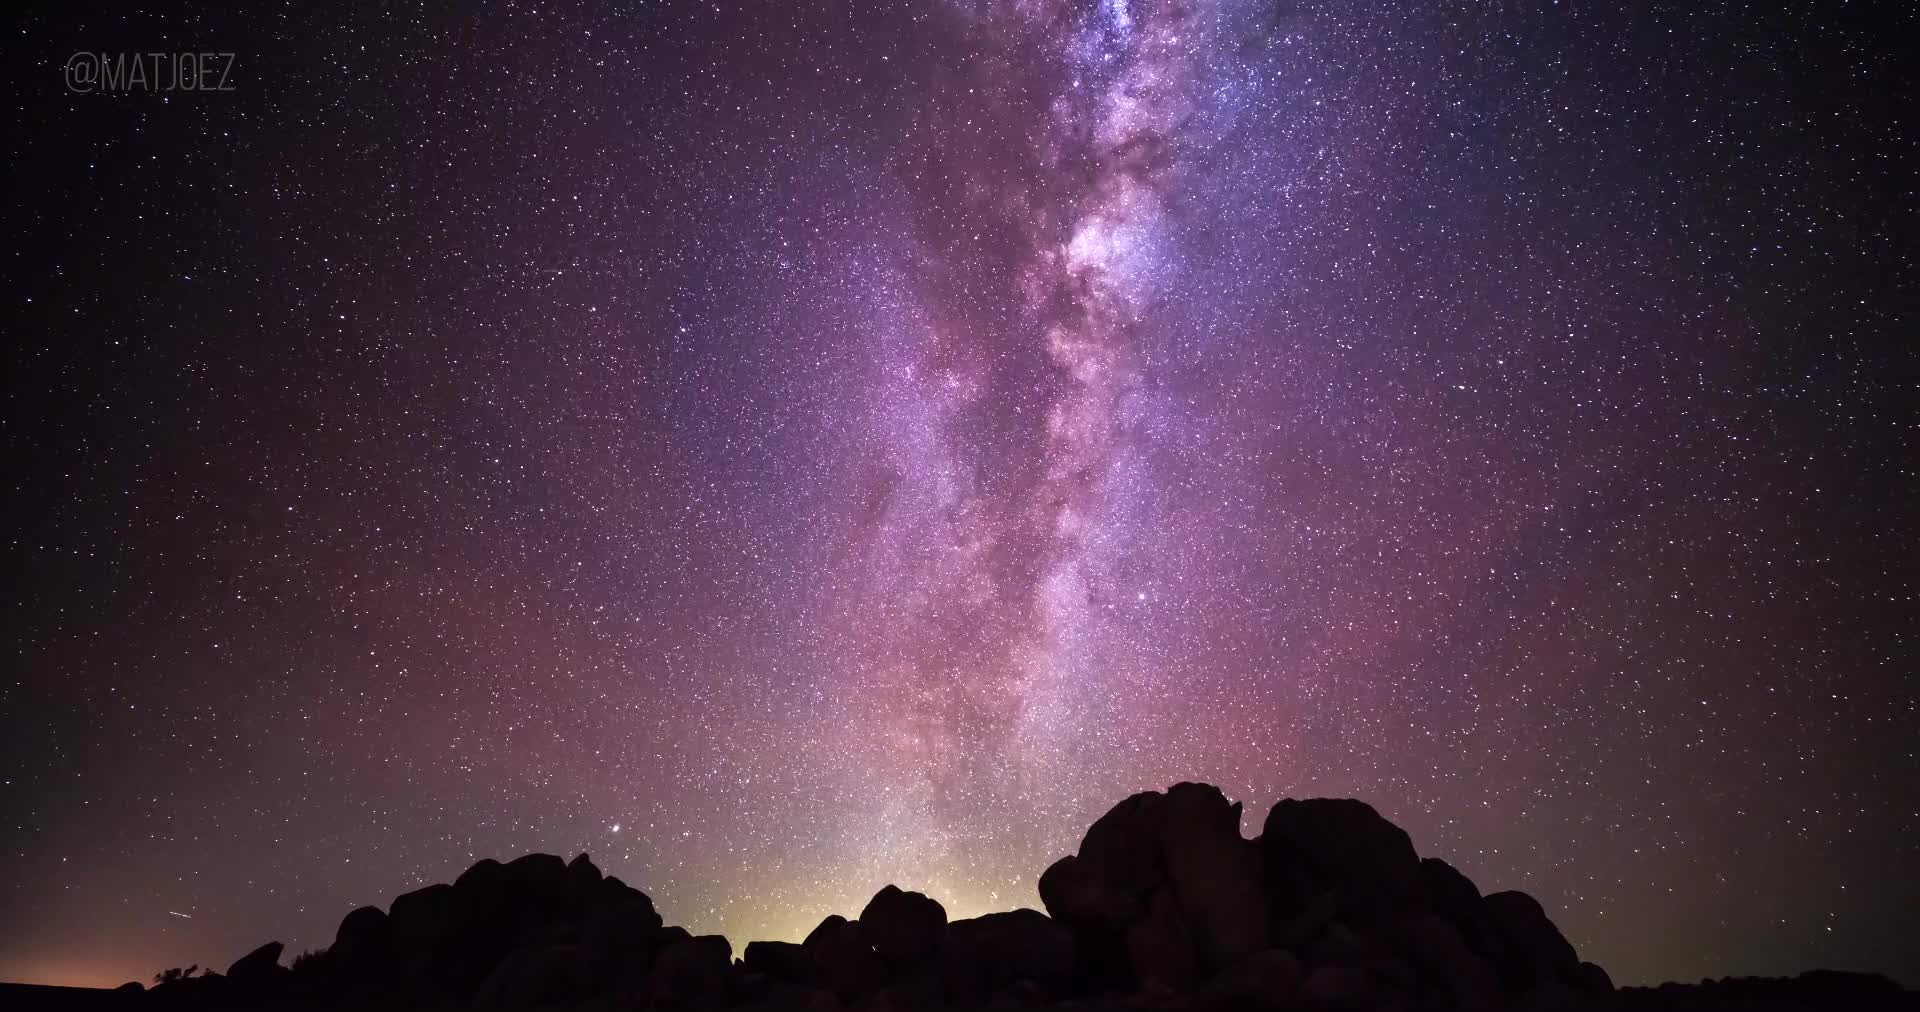 astronomy, astrophotography, galaxy, space, timelapse, Milky way with airglow by @matjoez GIFs